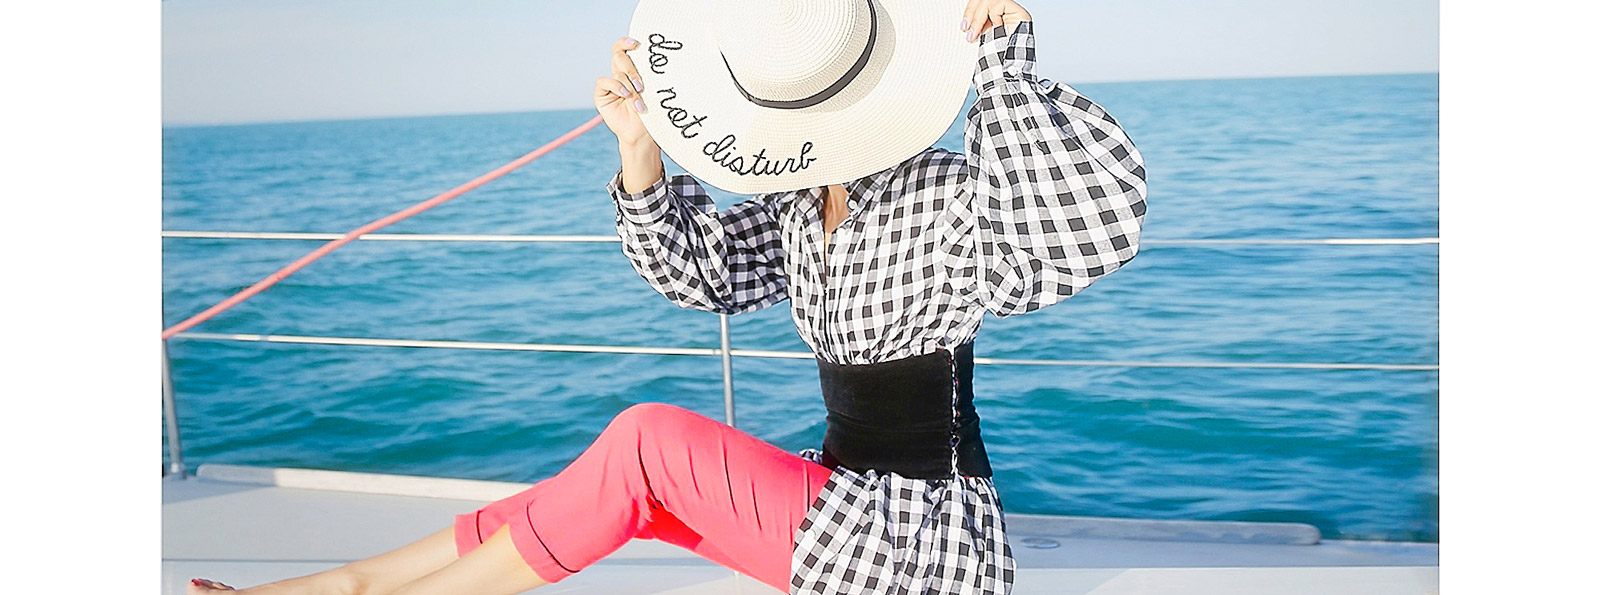 on_the_yachts_styles_fashion